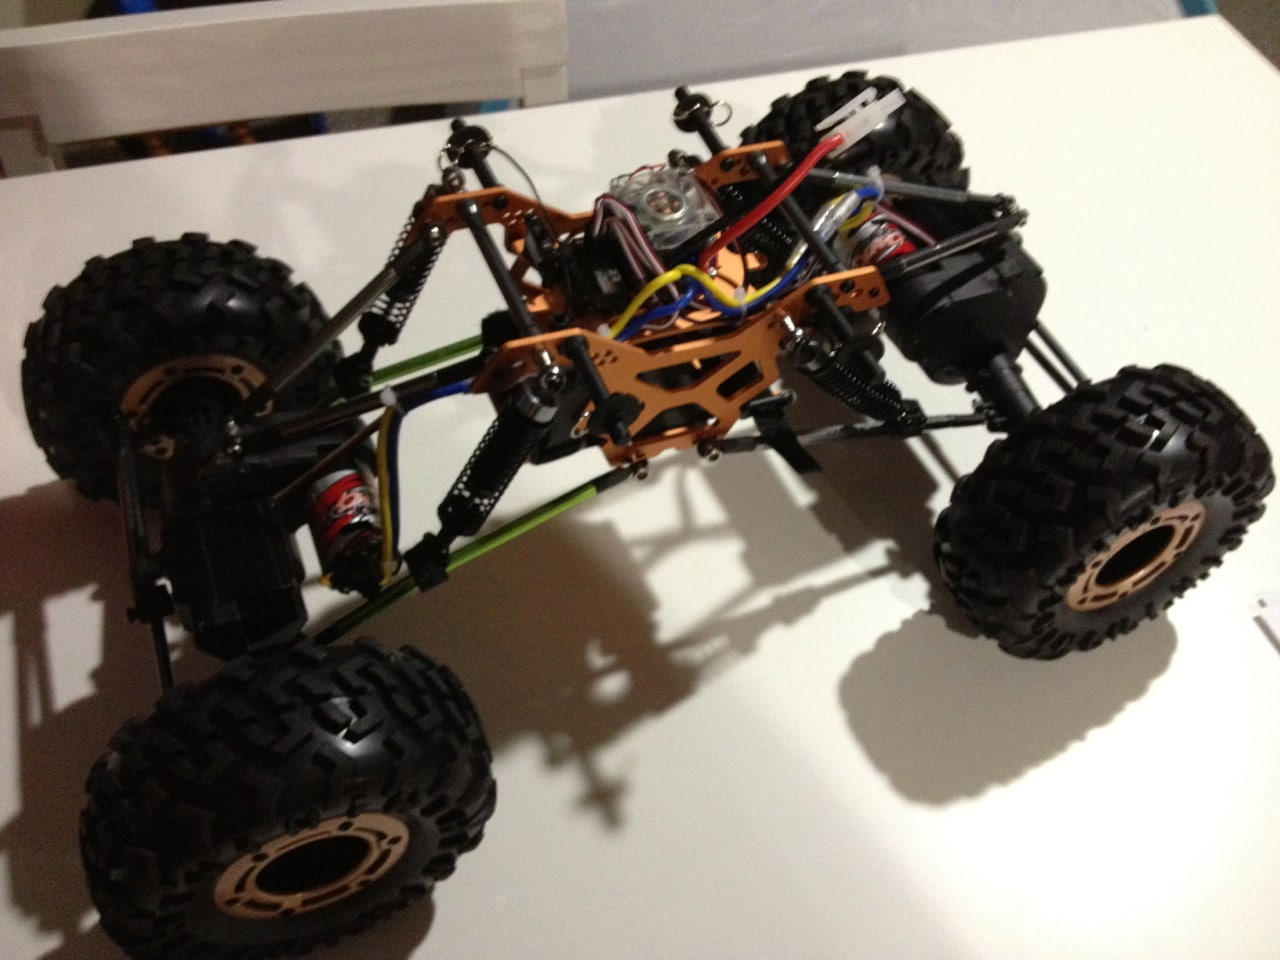 Frankencrawler – Digging into rock crawling and scalers